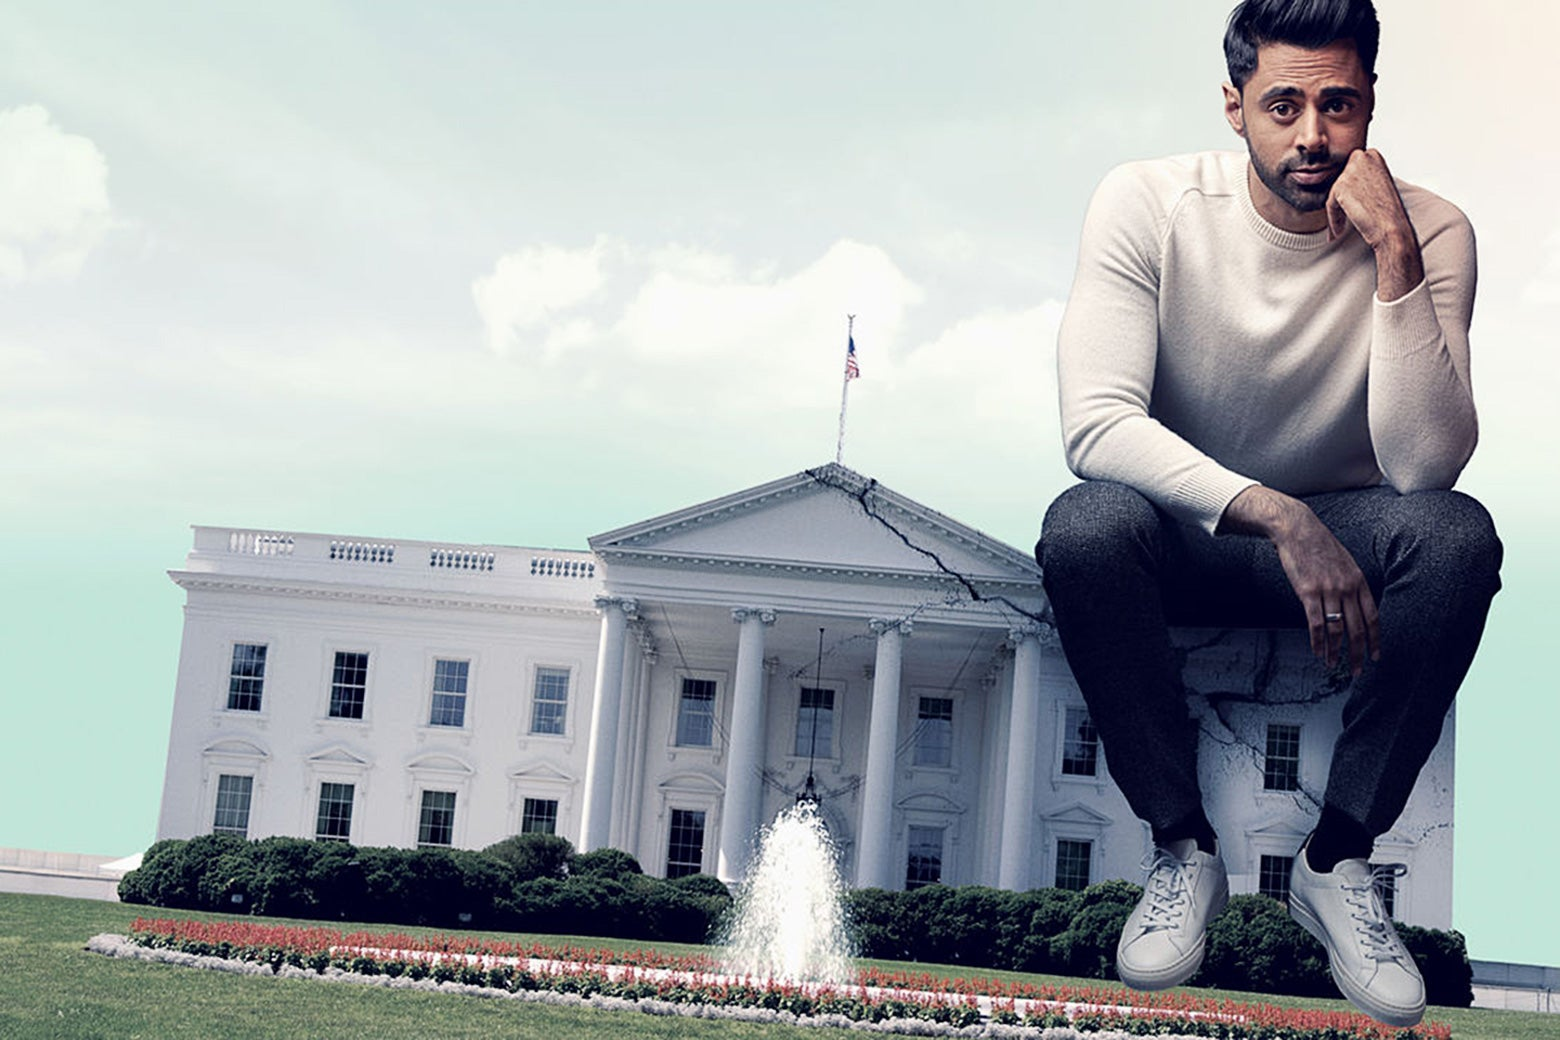 In this photo illustration, Hasan Minhaj sits on one corner of the White House. He's very large, and the White House is very small and seat-size.